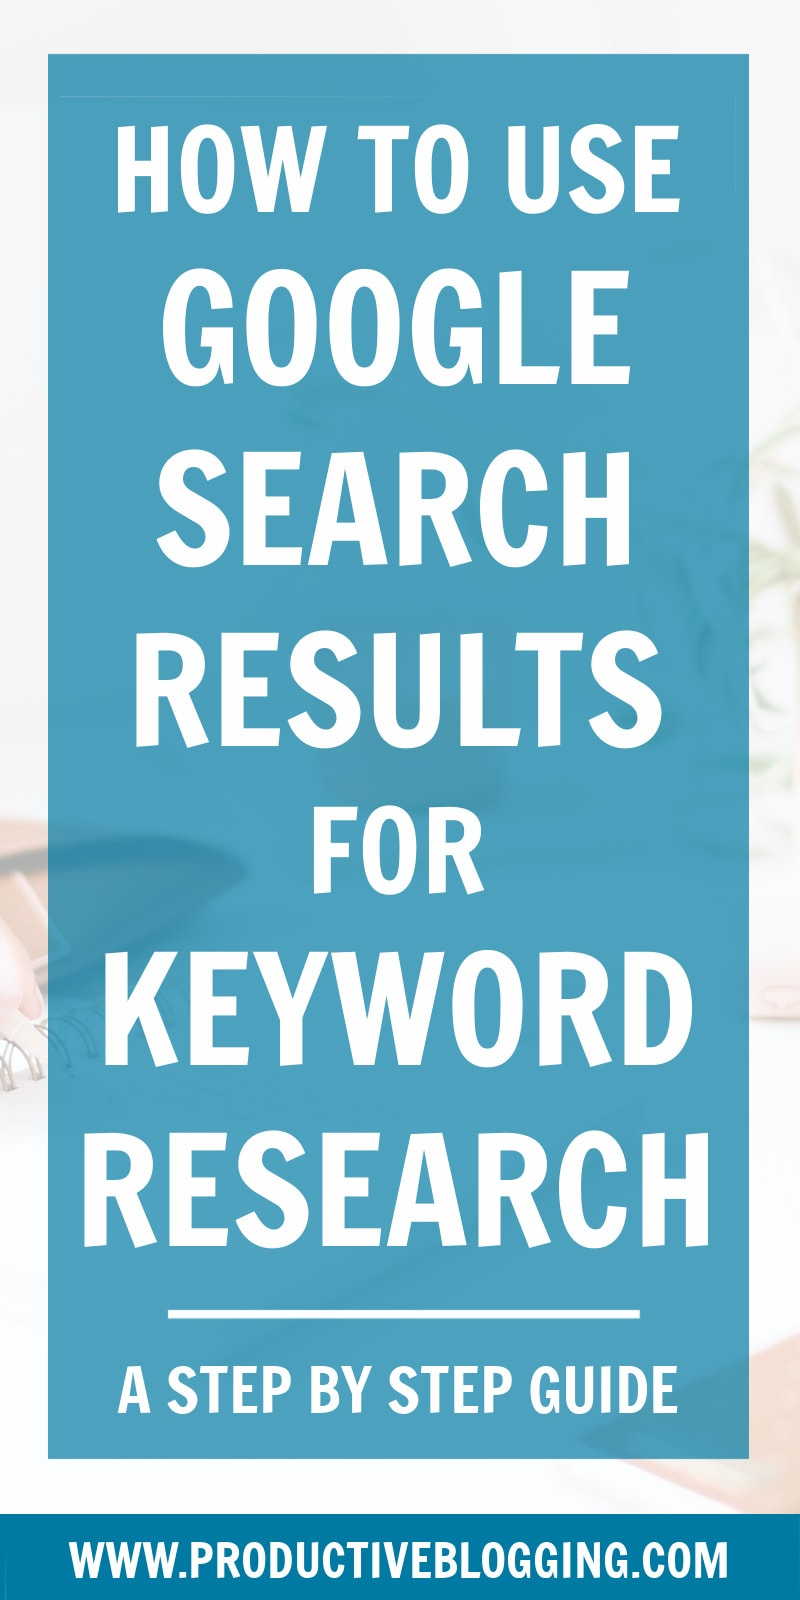 Most bloggers are missing a trick when it comes to keyword research. Google's own search results can provide you with a wealth of high volume, low competition keywords your competitors are missing! Here's how to use Google Search Results for keyword research. #keywordresearch #keywordresearchhacks #keywordresearchtools #SEOforbloggers #SEOforbeginners #beginnersSEO #SEOtips #SEOhacks #growyourblog #bloggrowth #bloggrowthhacks #bloggingtips #blogtips #blogginghacks #bloghacks #productiveblogging